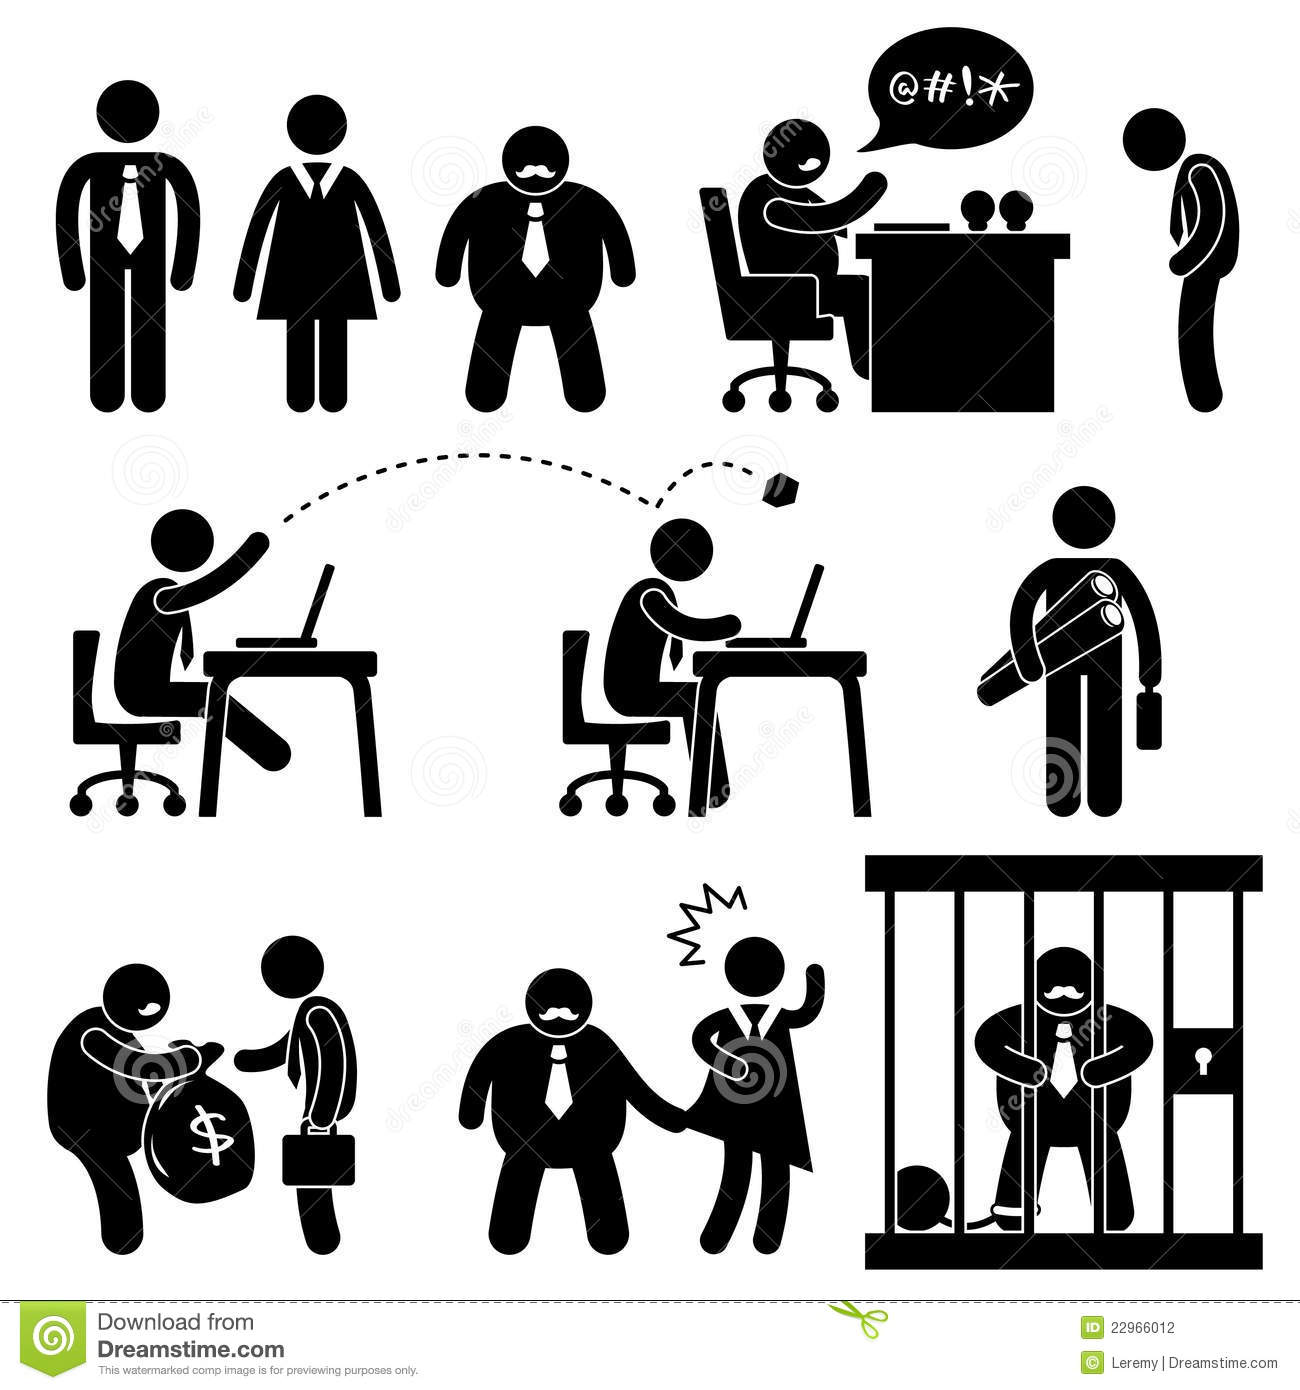 Funny Business Office Boss Icon Stock Photography - Image: 22966012: www.dreamstime.com/stock-photography-funny-business-office-boss...